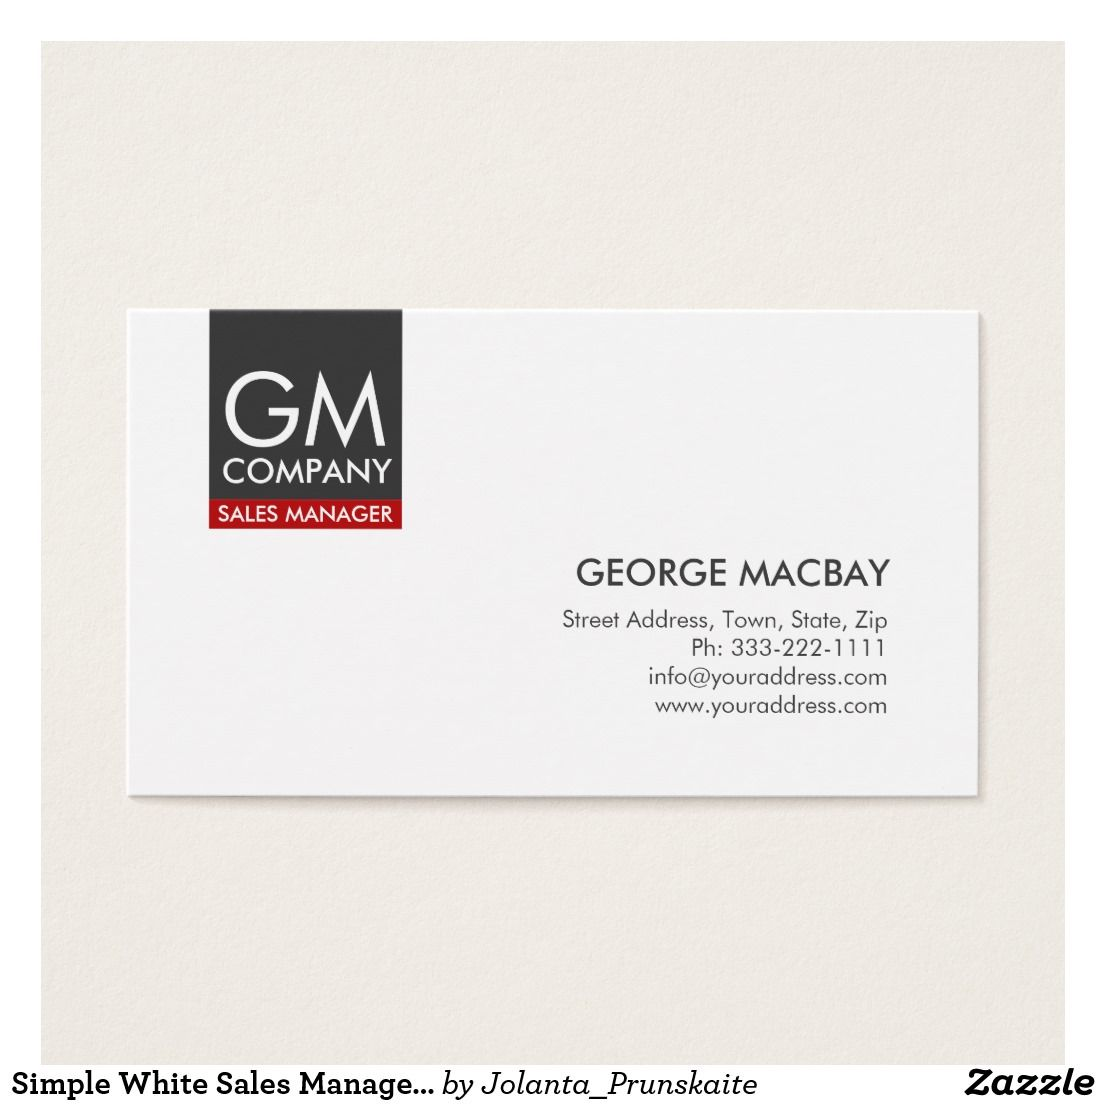 simple white sales manager monogram business card - Business Card Manager